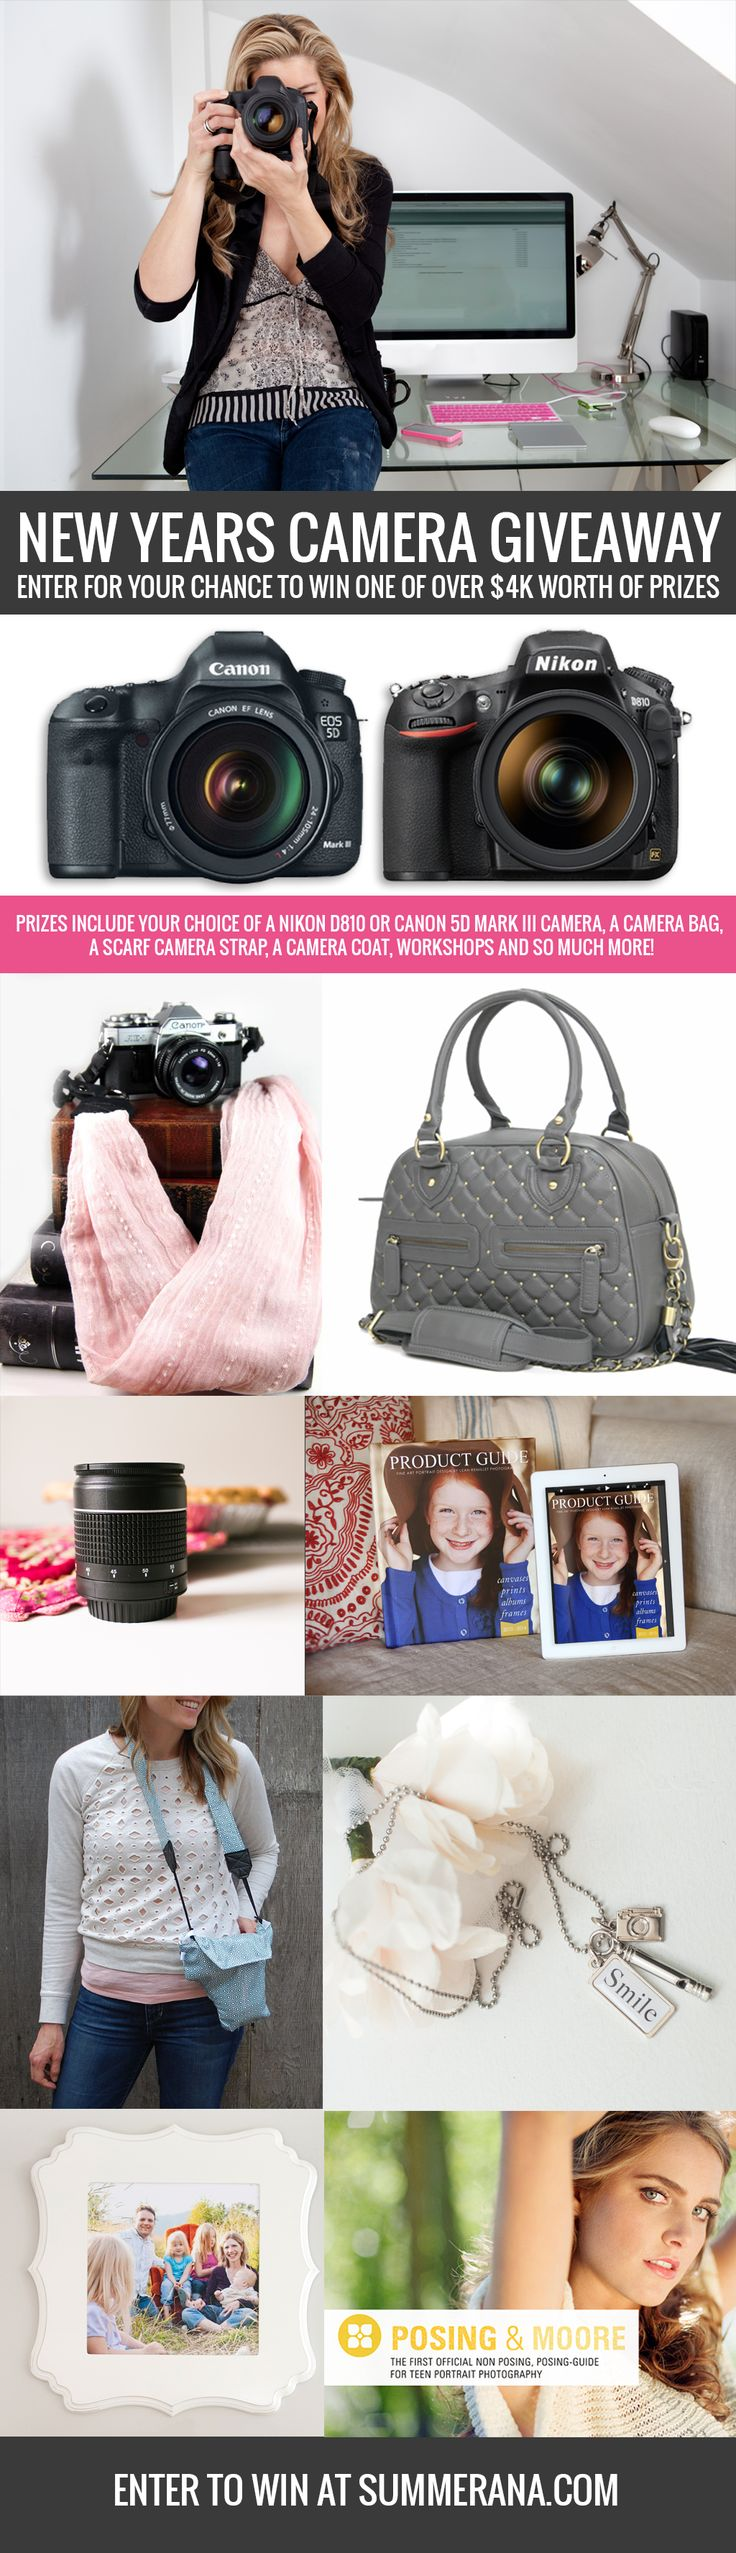 GIVEAWAY: Enter the Summerana - Photoshop Actions for Photographers New Years Camera Giveaway!   We are so excited to offer you a chance to win over $4K in photography prizes, including your choice of a Nikon D810 or Canon 5D Mark III Camera, a camera bag, a scarf camera strap, a camera coat, and so much more.  Start your New Years with a BANG here: http://summerana.com/summerana-photoshop-actions-for-photographers-new-years-camera-giveaway/